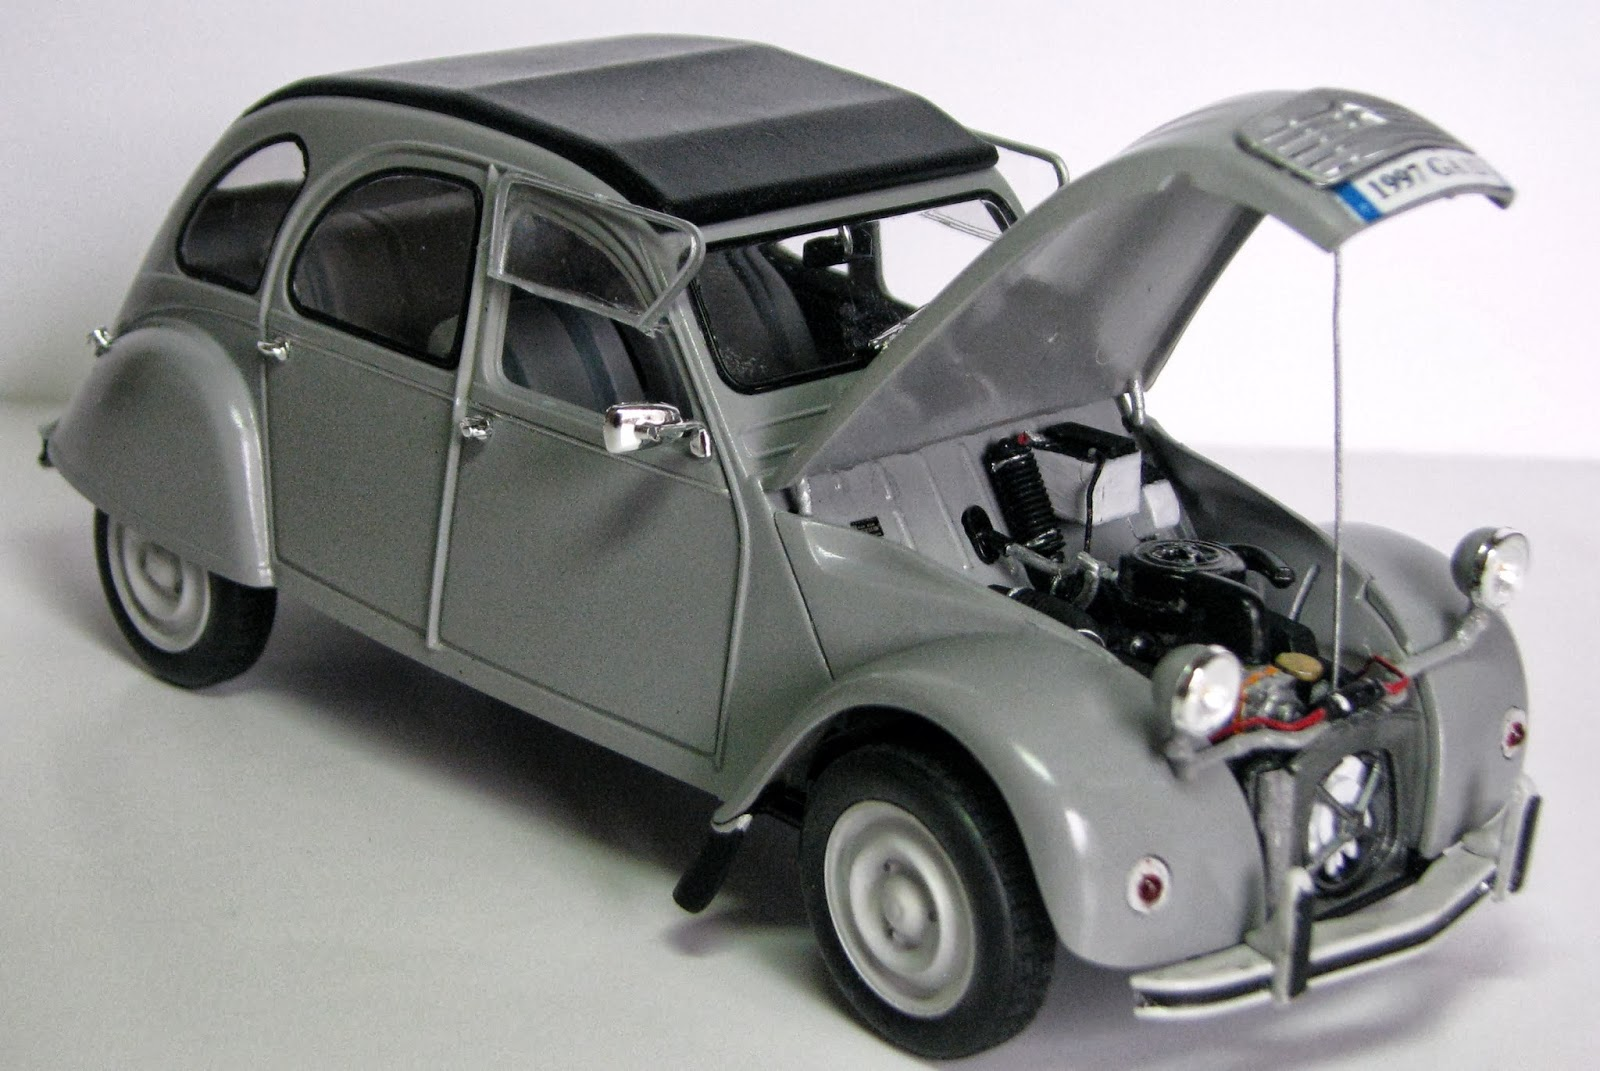 en mod le r duit 2cv citro n mod le 1976 tamiya ech 1 24. Black Bedroom Furniture Sets. Home Design Ideas